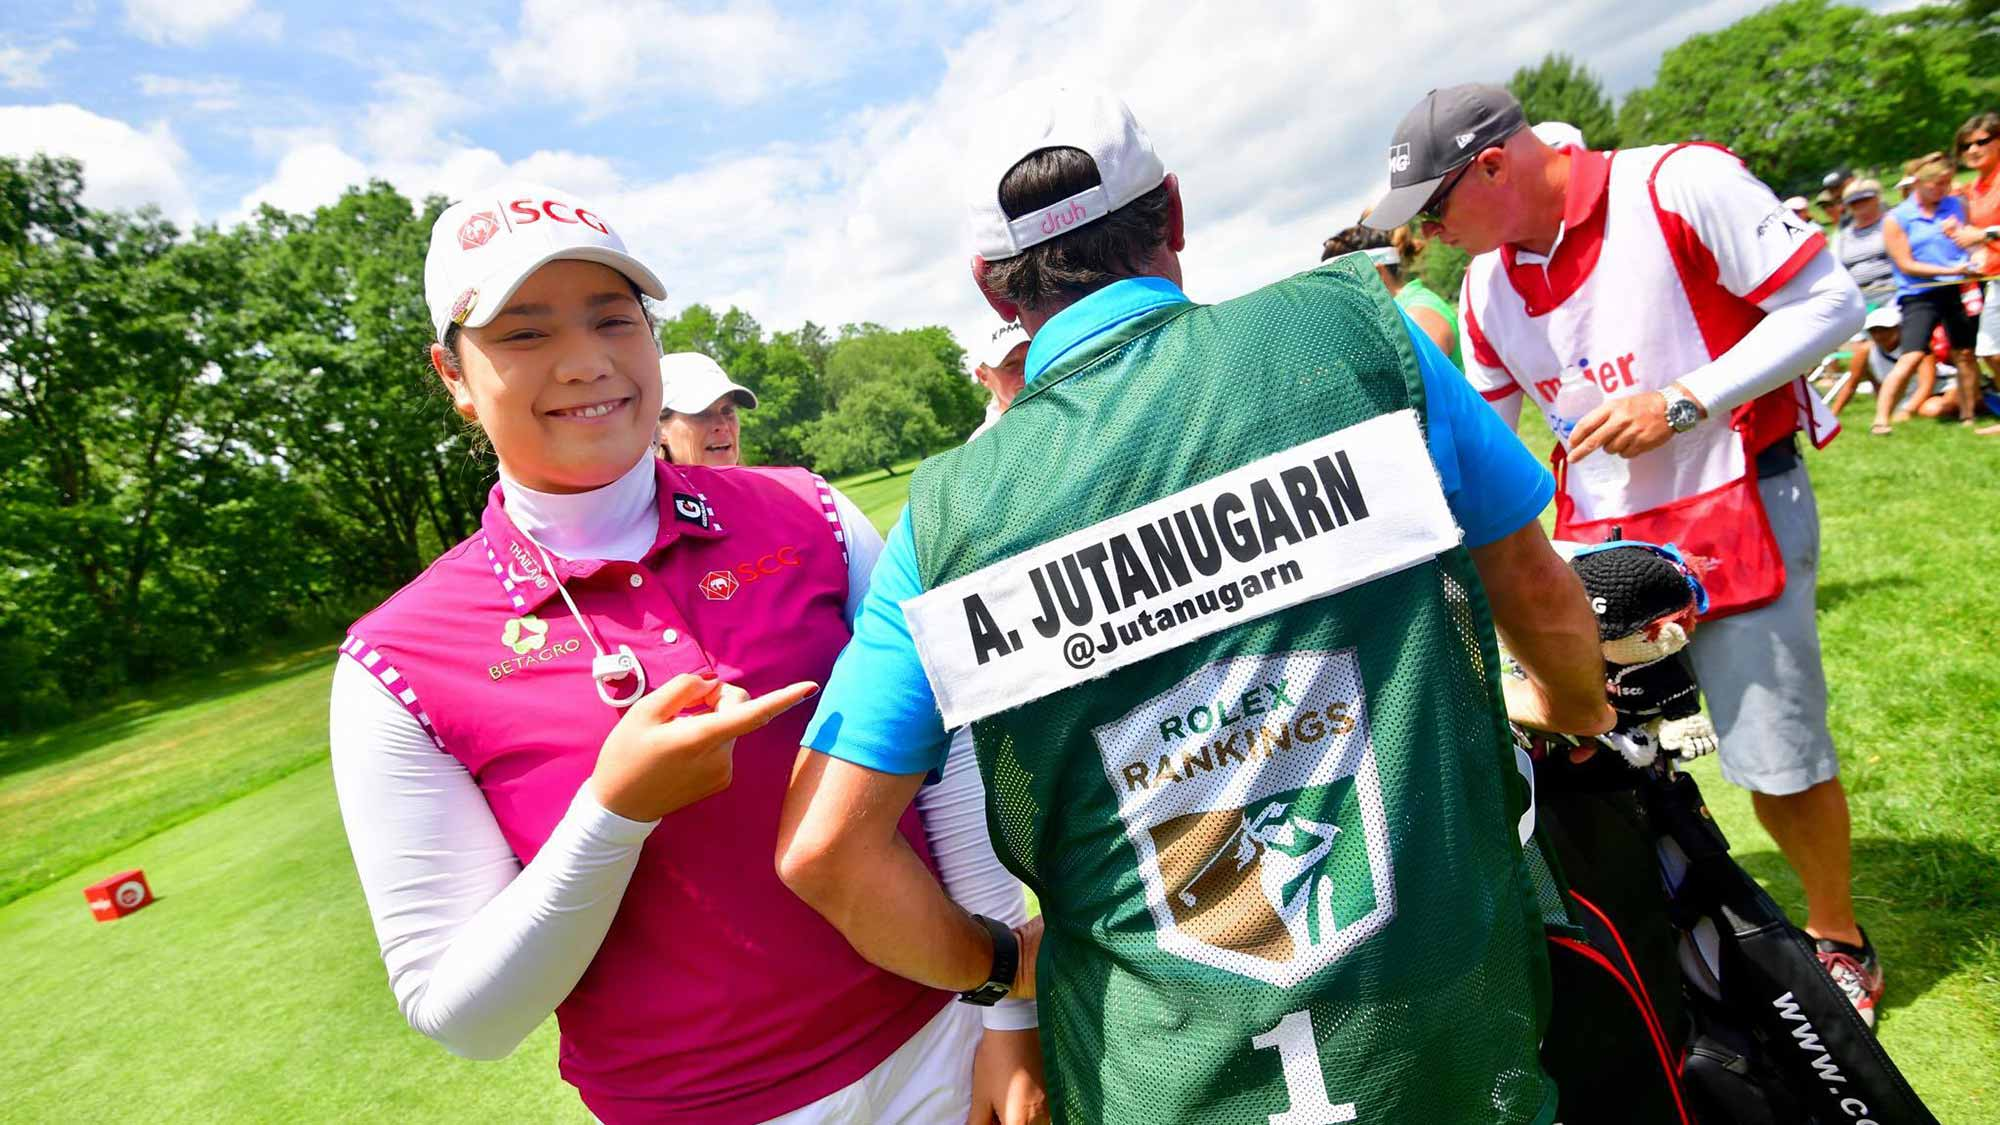 Ariya Jutanugarn Receives No. 1 Rolex Rankings Caddie Bib On First Tee During Opening Round of Meijer LPGA Classic for Simply Give